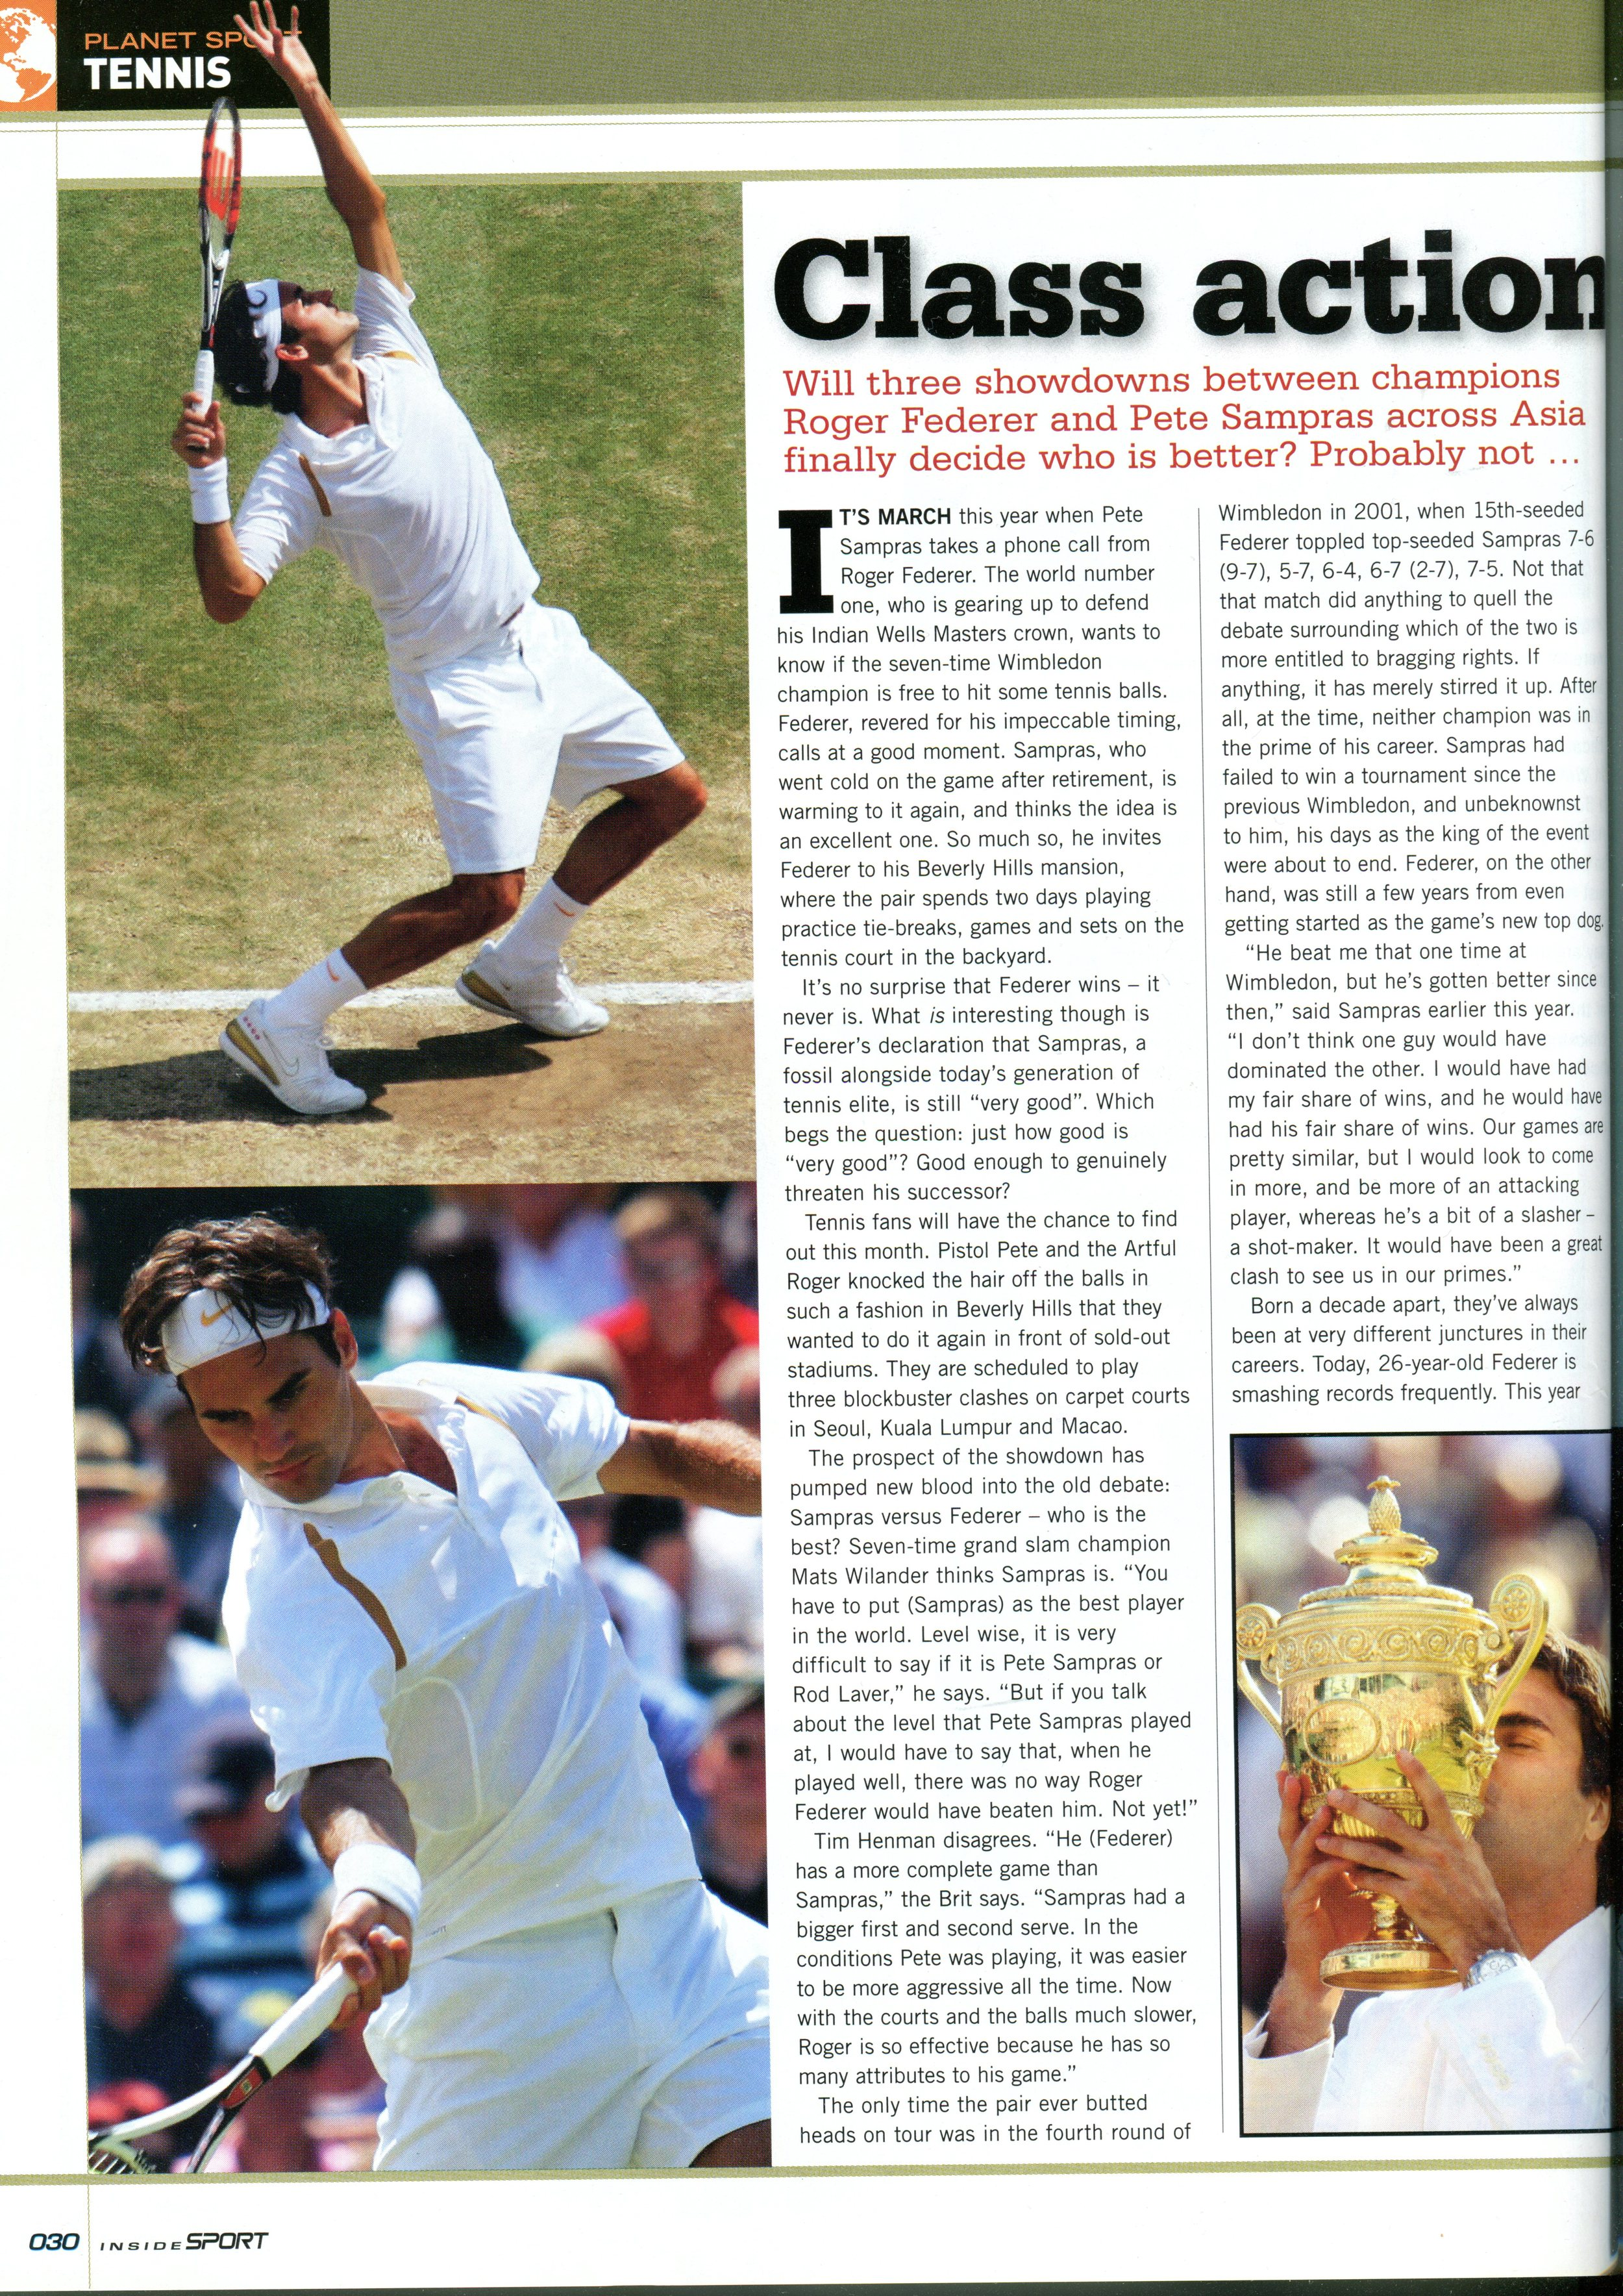 INSIDE SPORT DECEMBER 2007 SAMPRAS VS FEDERER FEATURE (2).jpg